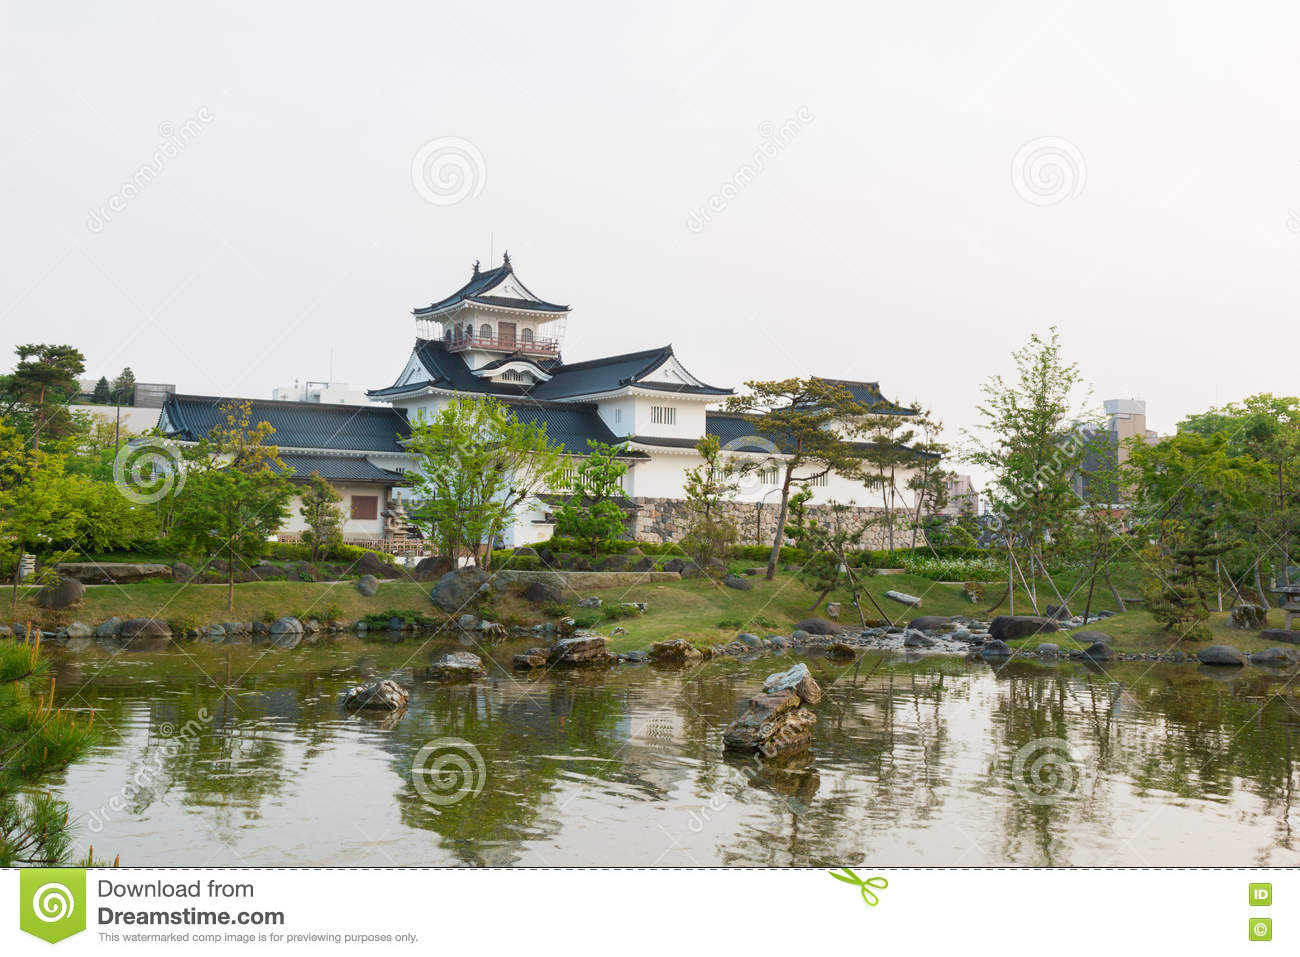 Toyama castle with beautiful garden and reflection in water.